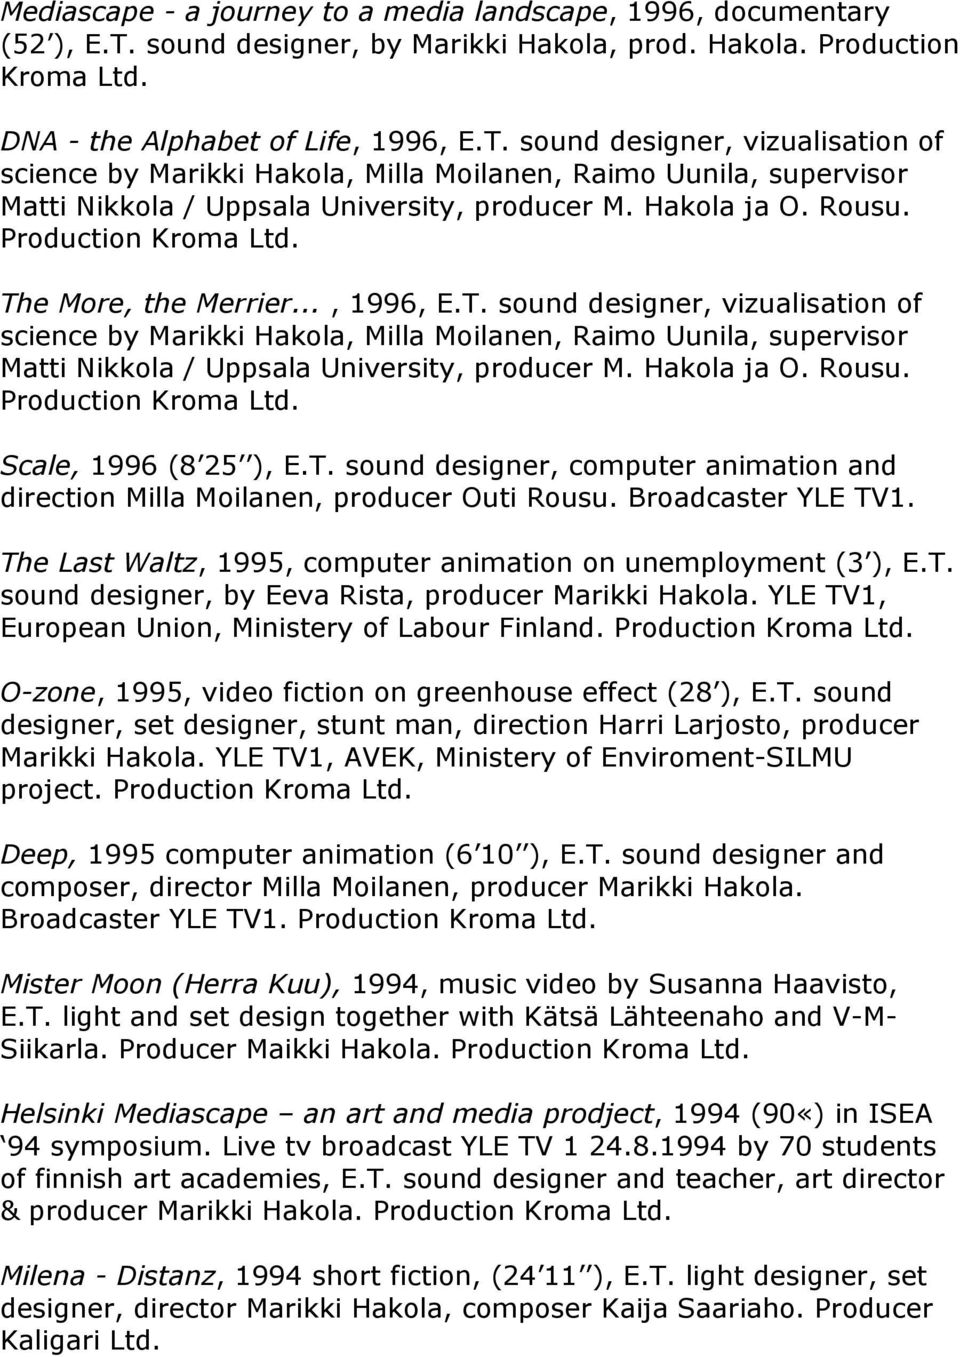 sound designer, vizualisation of science by Marikki Hakola, Milla Moilanen, Raimo Uunila, supervisor Matti Nikkola / Uppsala University, producer M. Hakola ja O. Rousu. Production Kroma Ltd.